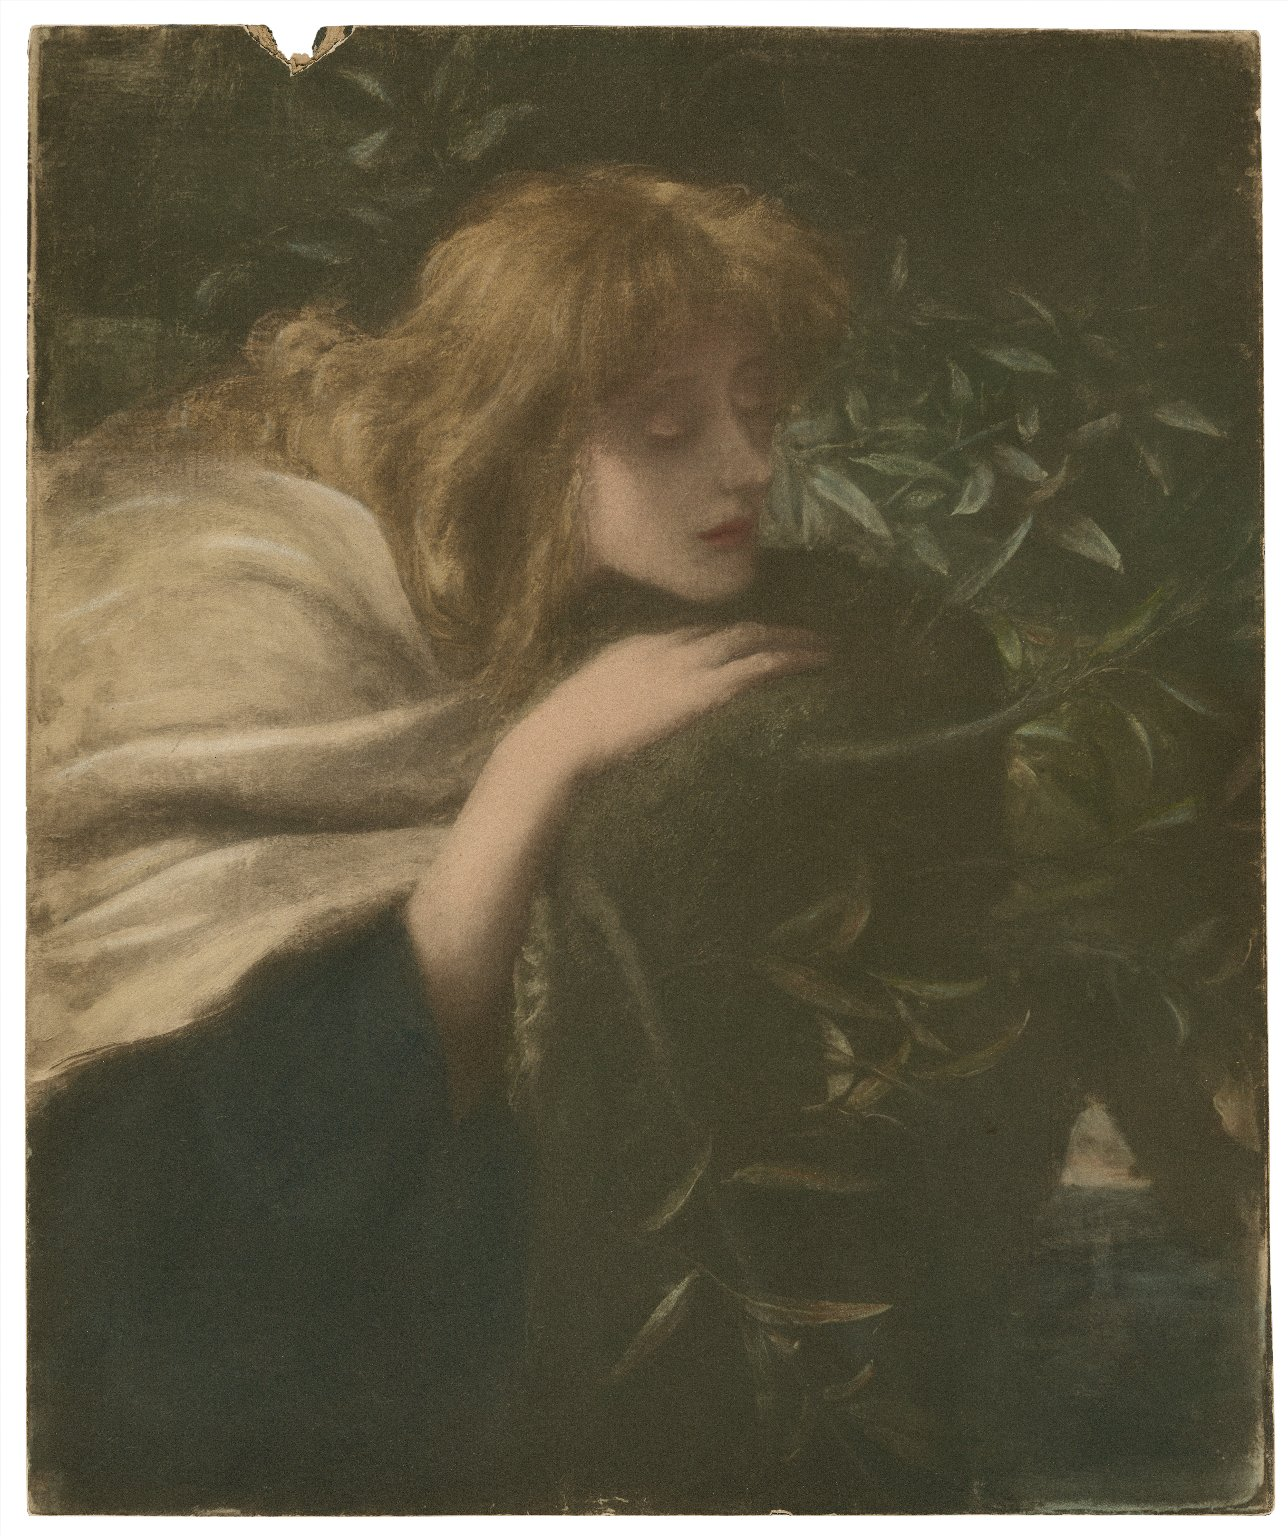 [Ellen Terry as Ophelia in Shakespeare's Hamlet] [graphic] / [George Frederick Watts] ; photographed by Fredk. Hollyer.